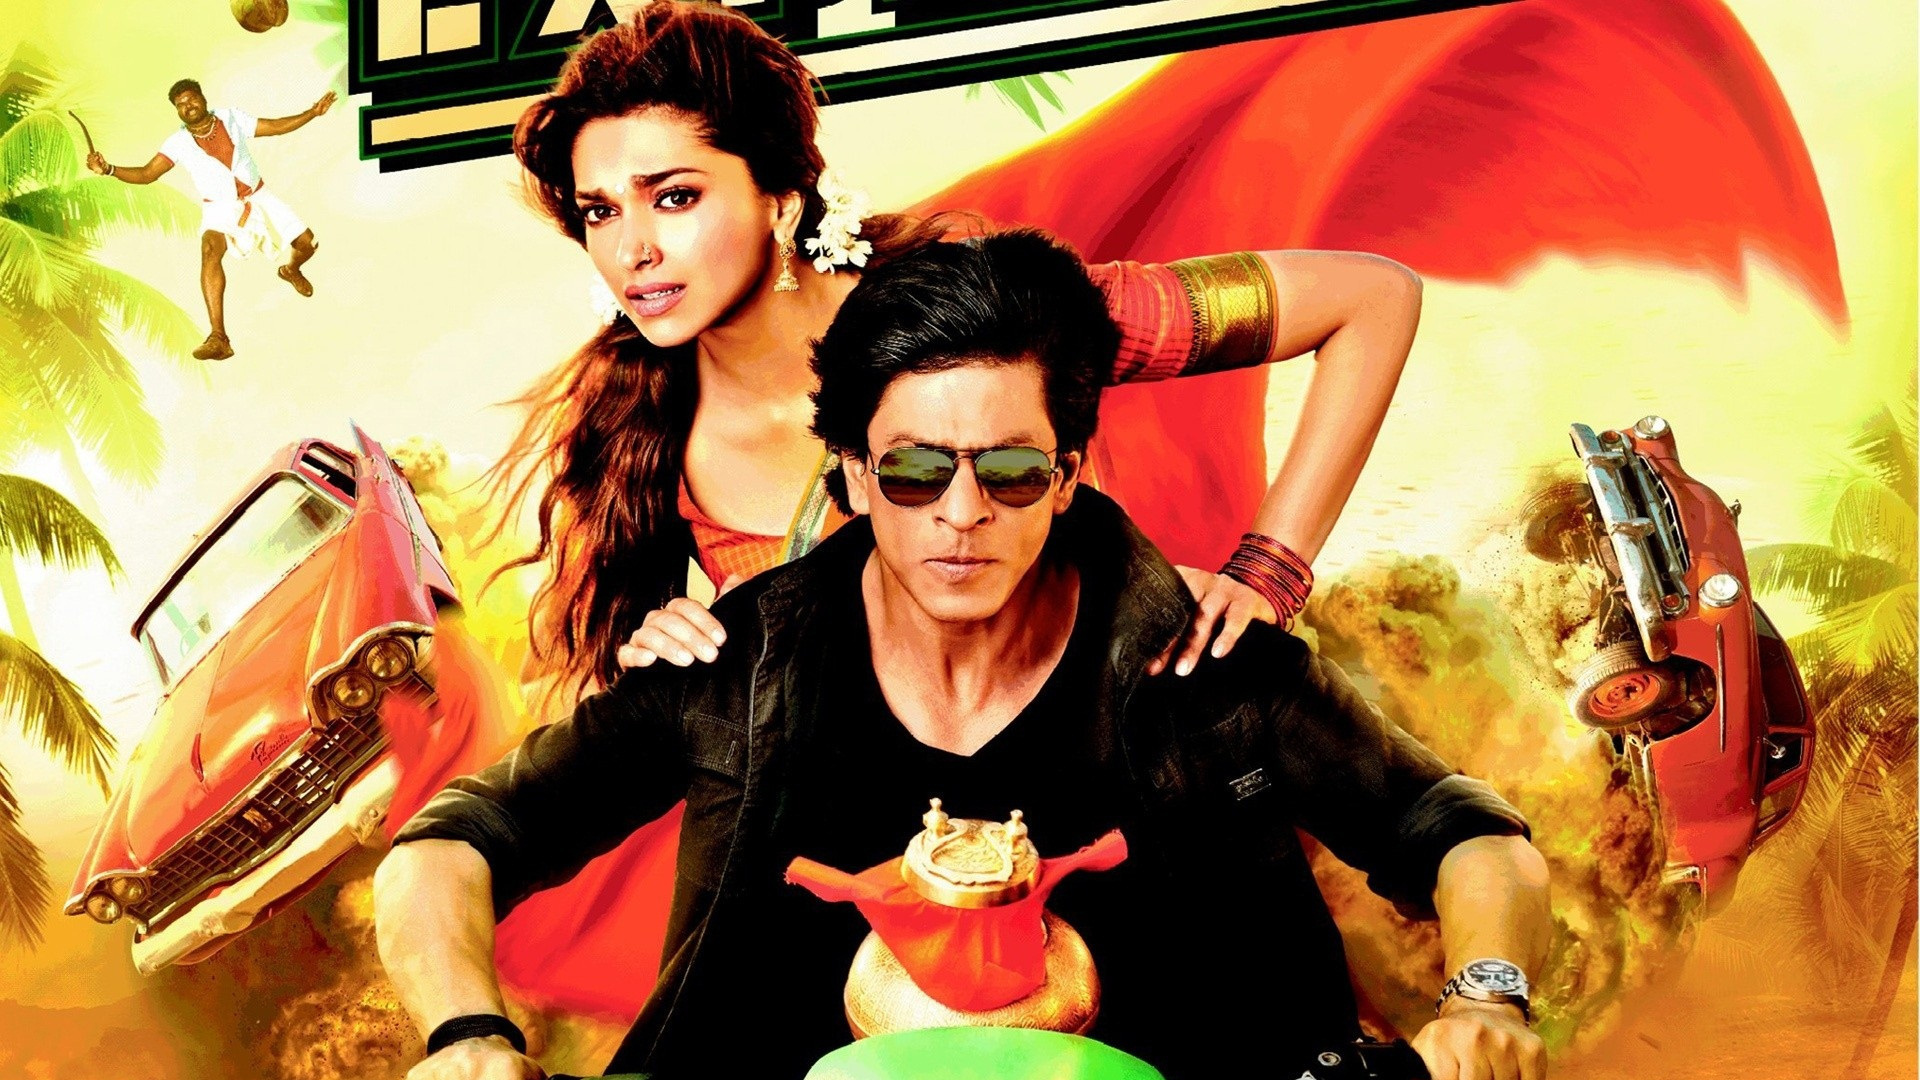 Poster Xpress Chennai Express Action Poster R Wallpaper 1920x1080